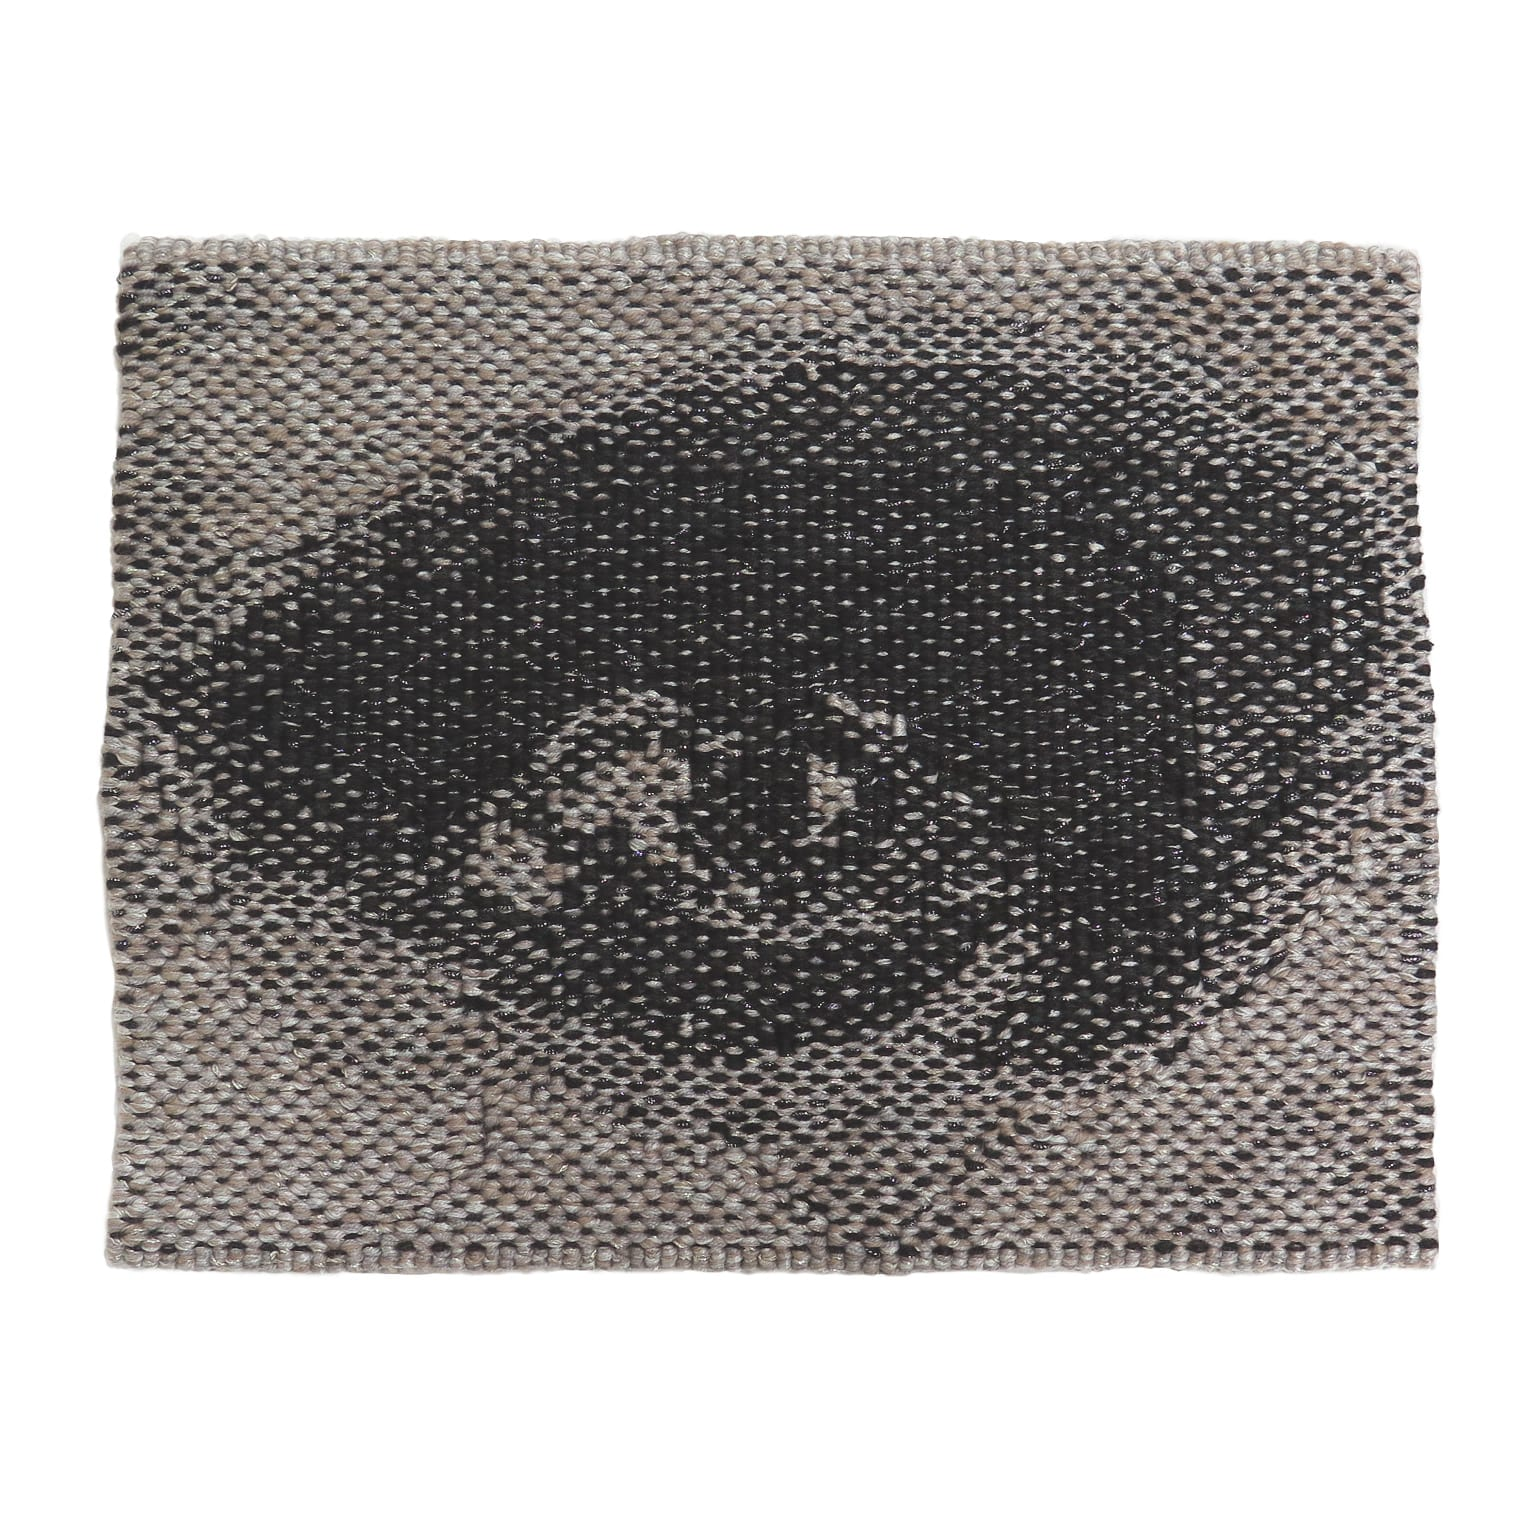 'Miili' Edition #9 designed by Brook Andrew in 2019, woven by Karlie Hawking, wool, cotton, Lurex, 23.2 x 29.4 cm. Edition of 10 + 2A/P.